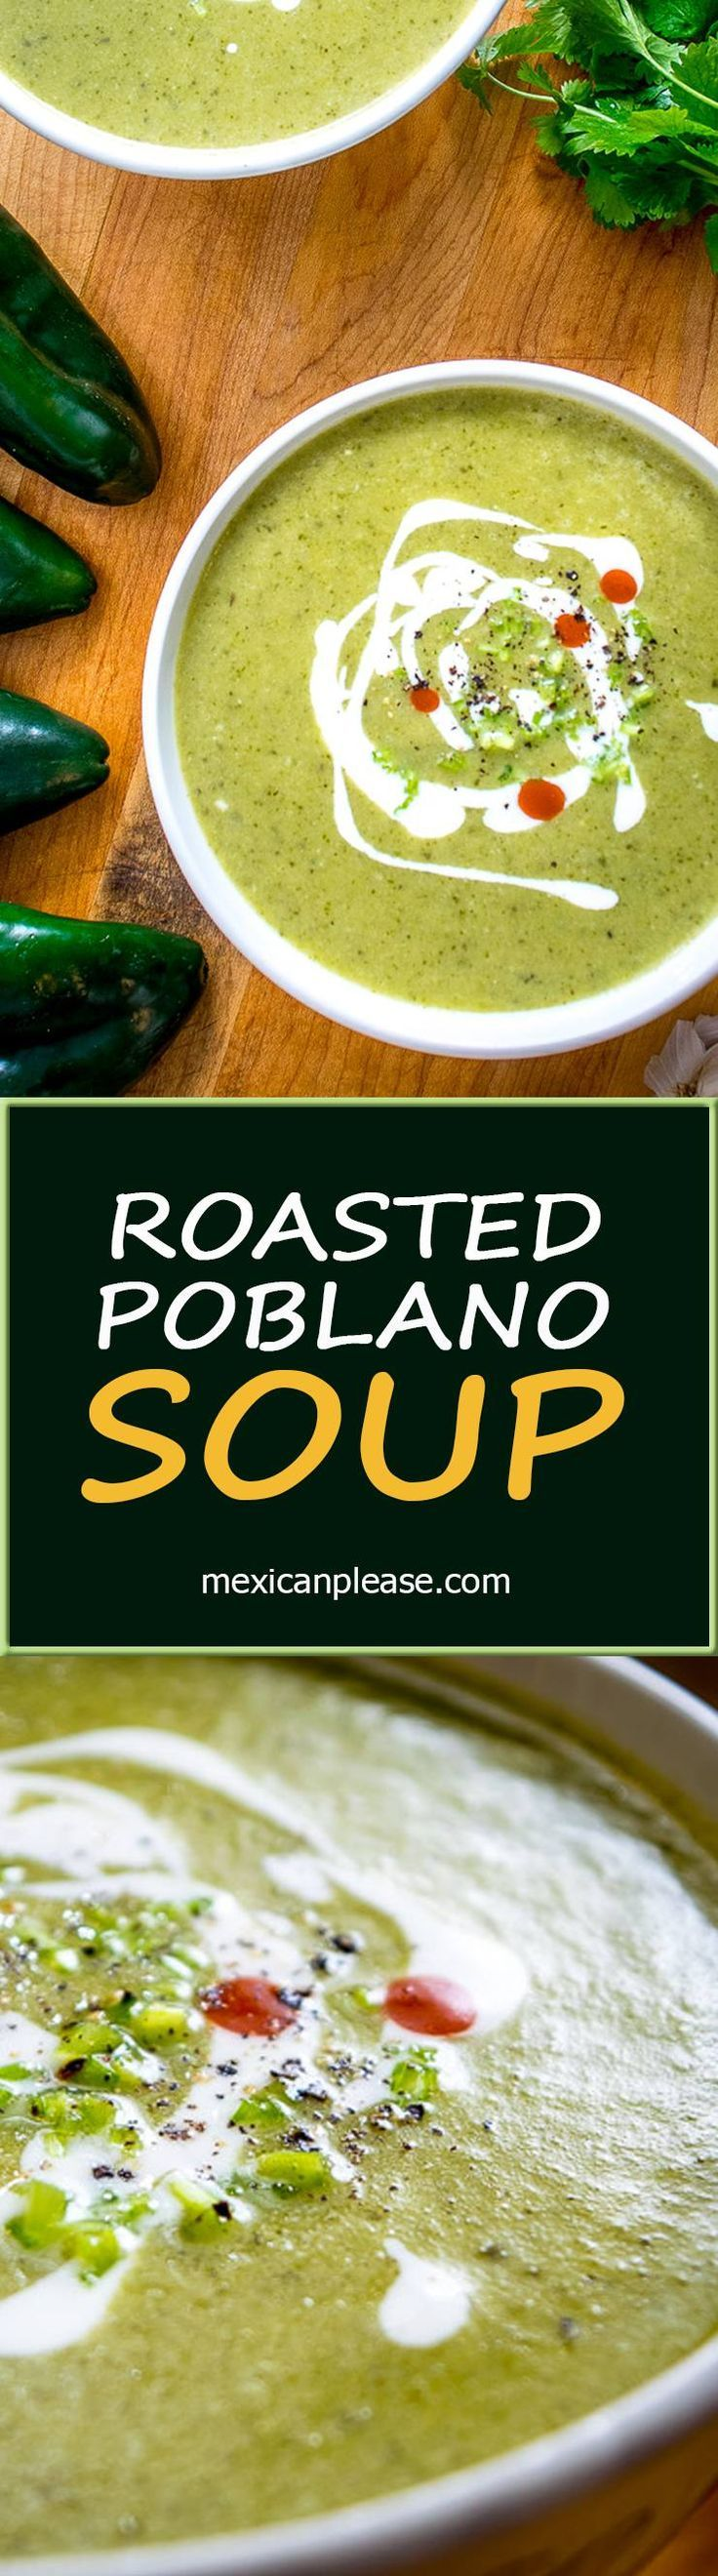 The key to this Roasted Poblano Soup is getting creative with the garnish.  Crema, cilantro stems, and a dash of acidity will turn it into something otherworldly.  So good!  http://mexicanplease.com